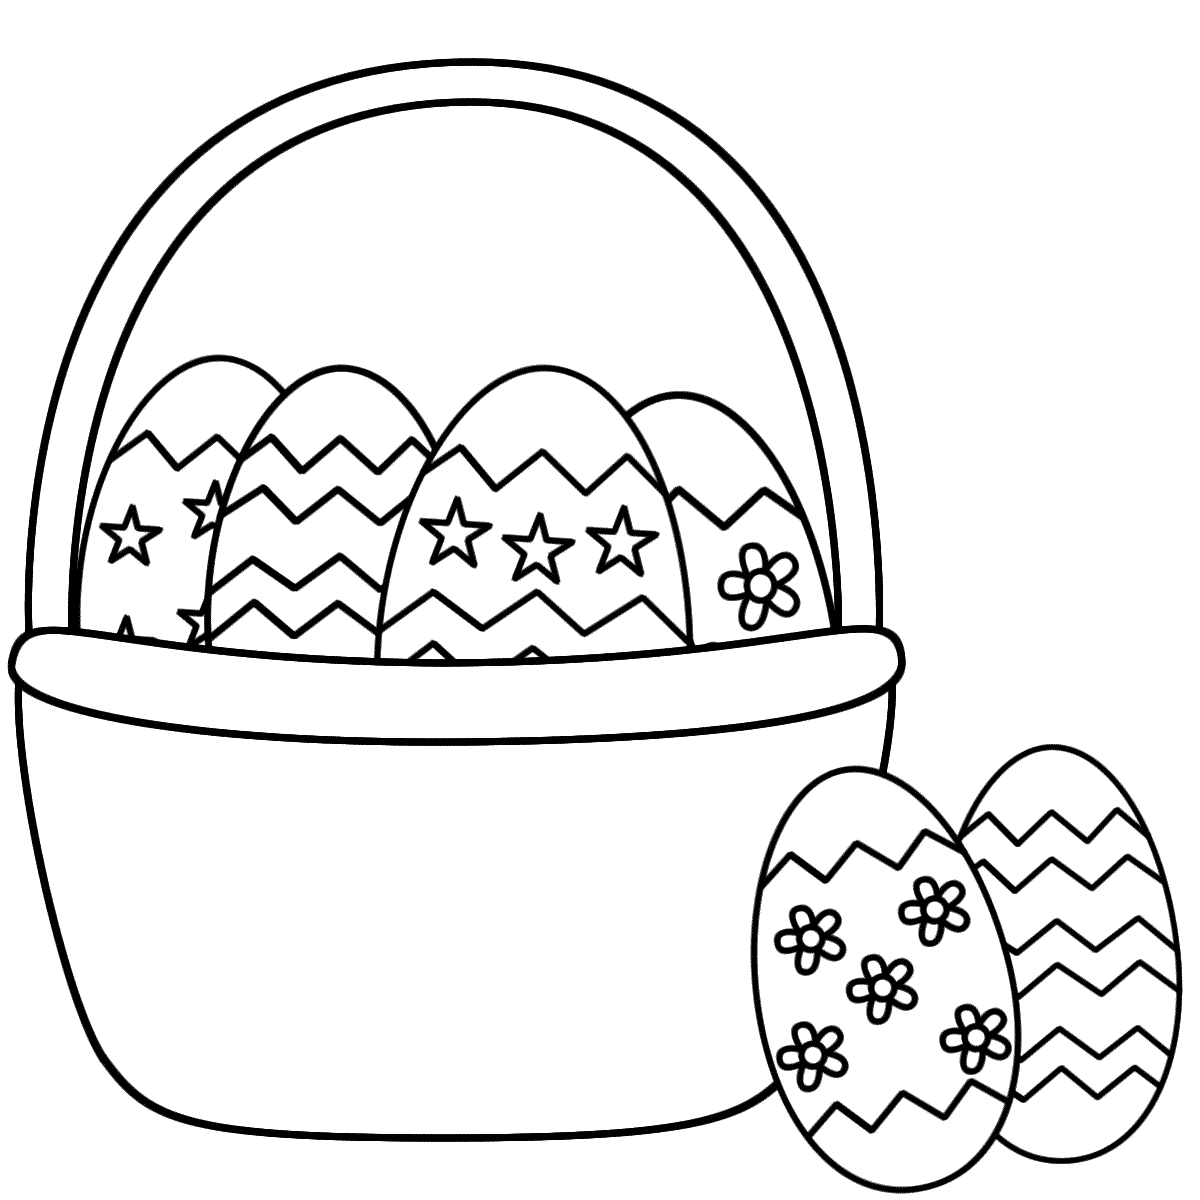 1200x1200 Printable Easter Egg Coloring Pages For Kids And Basket